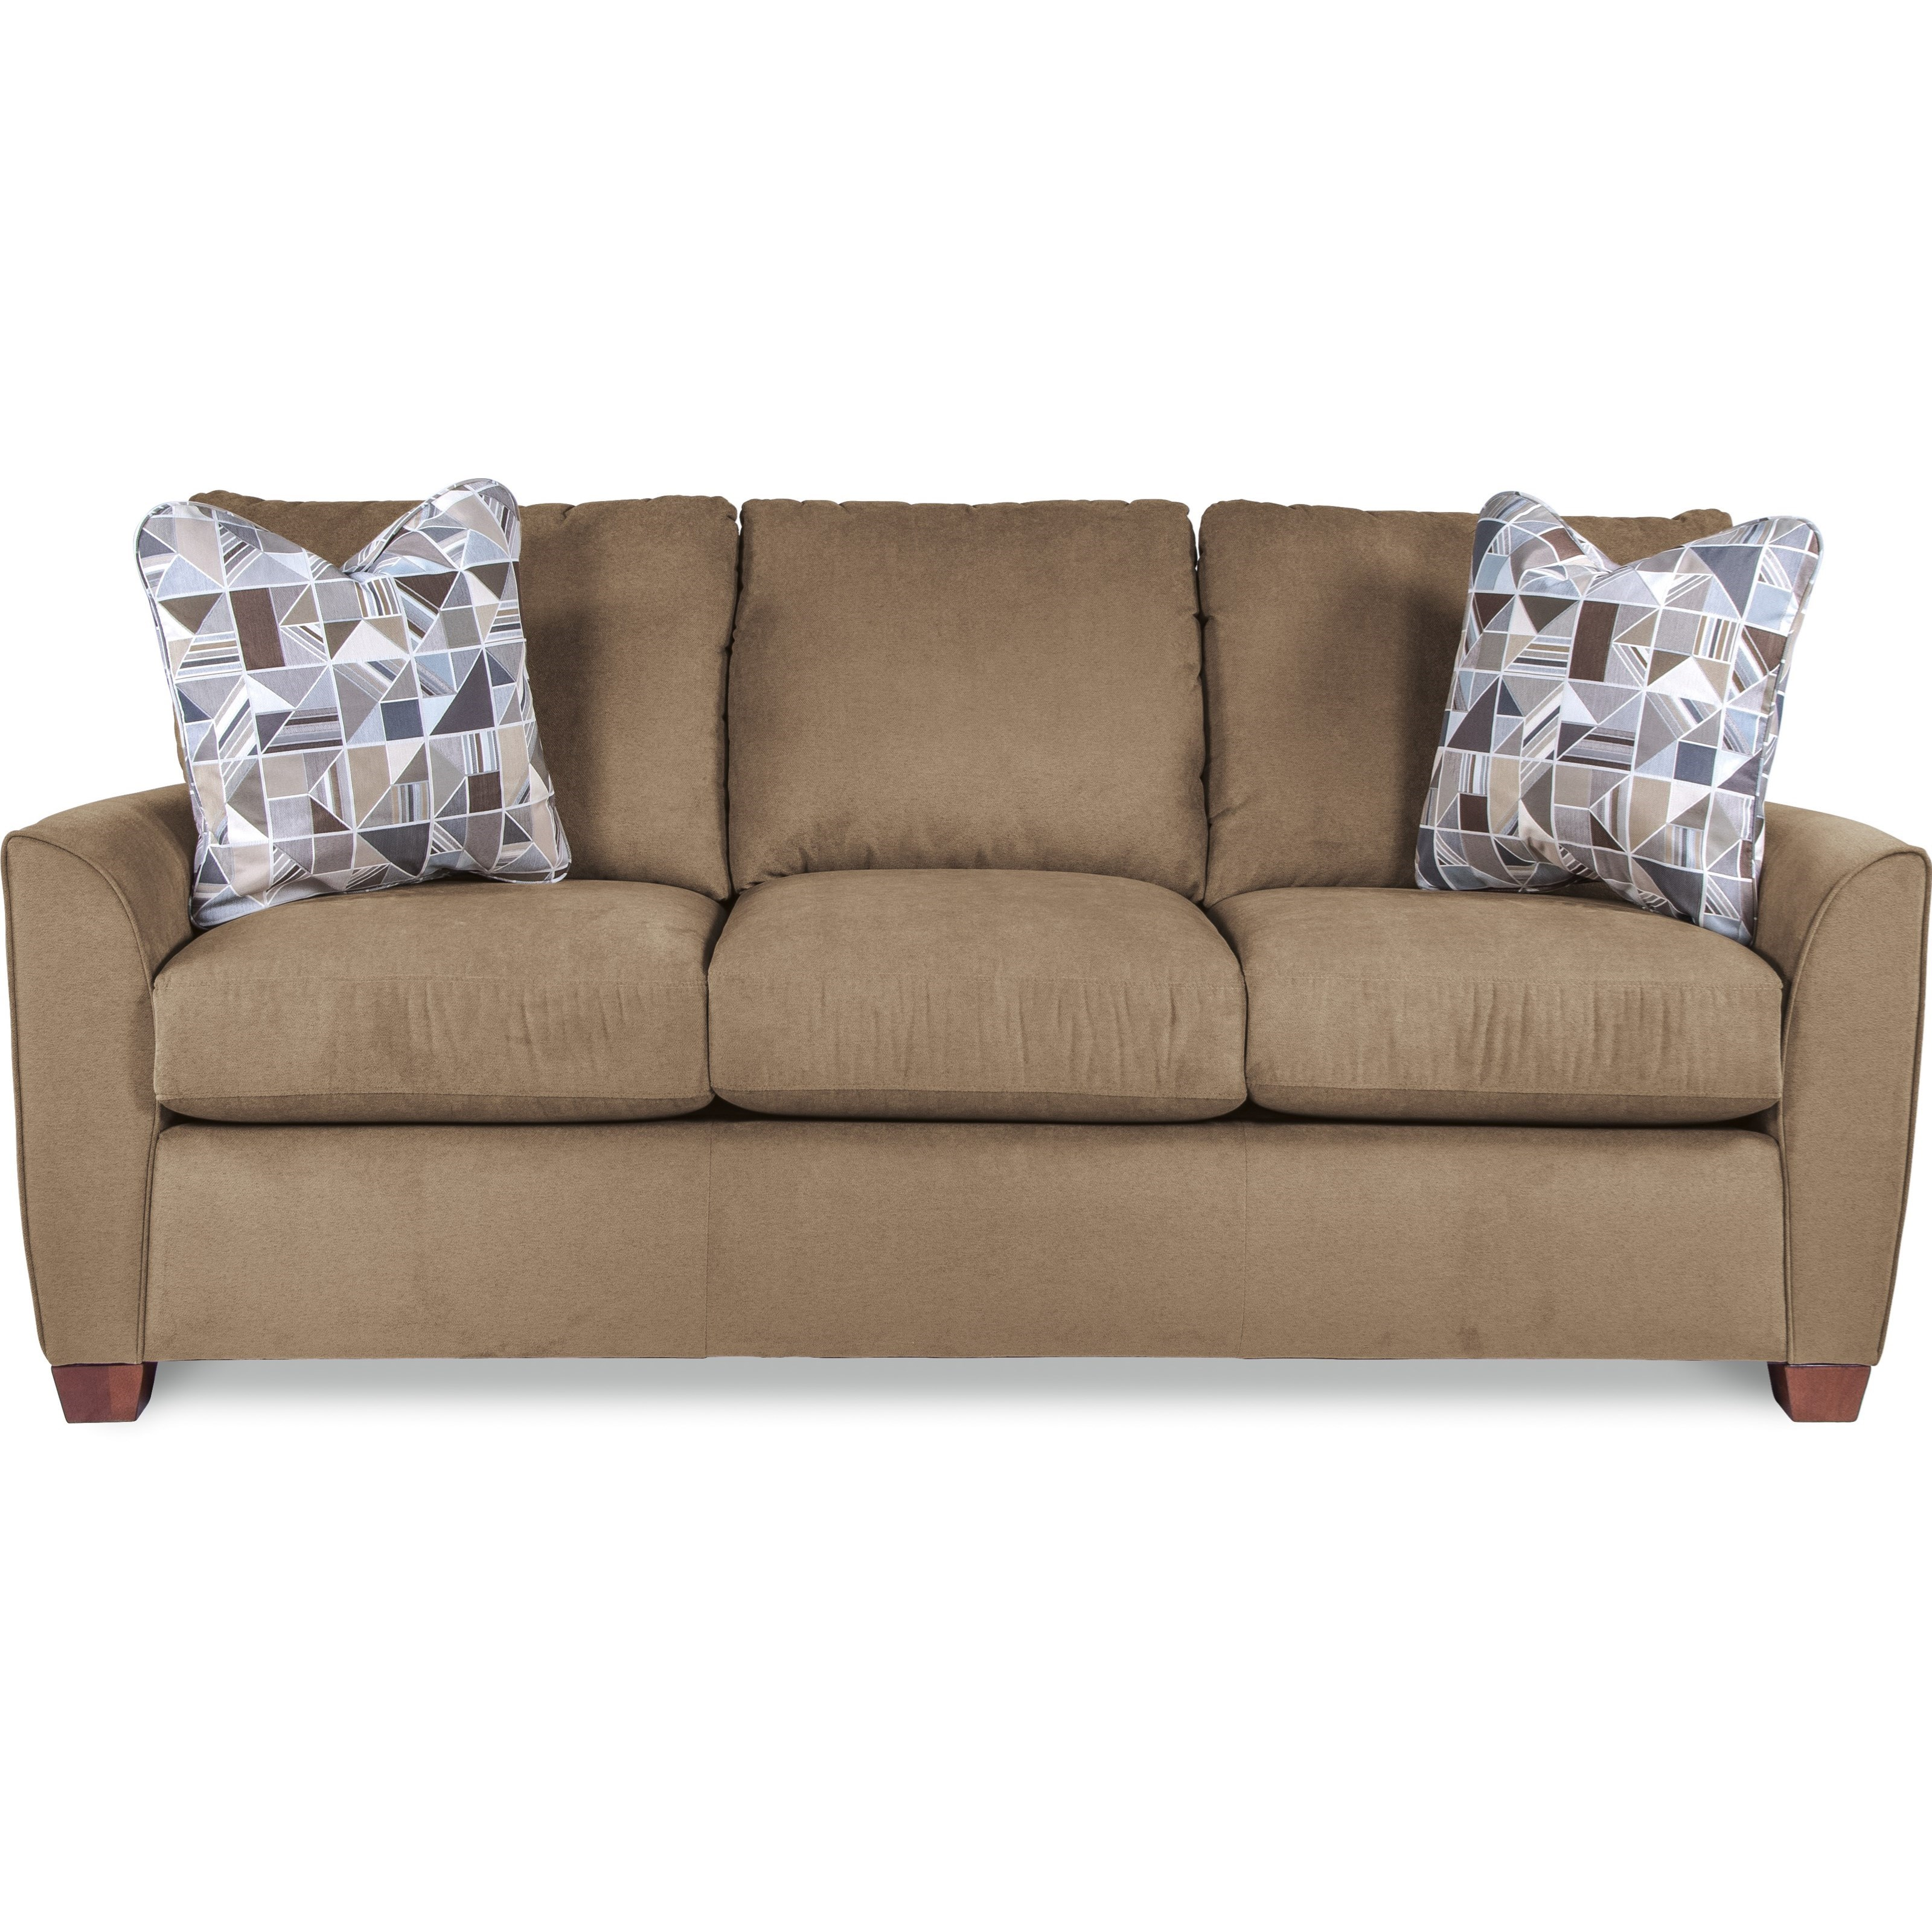 tempurpedic sleeper sofas sure fit stretch faux suede 2 piece sofa slipcover the top 15 best